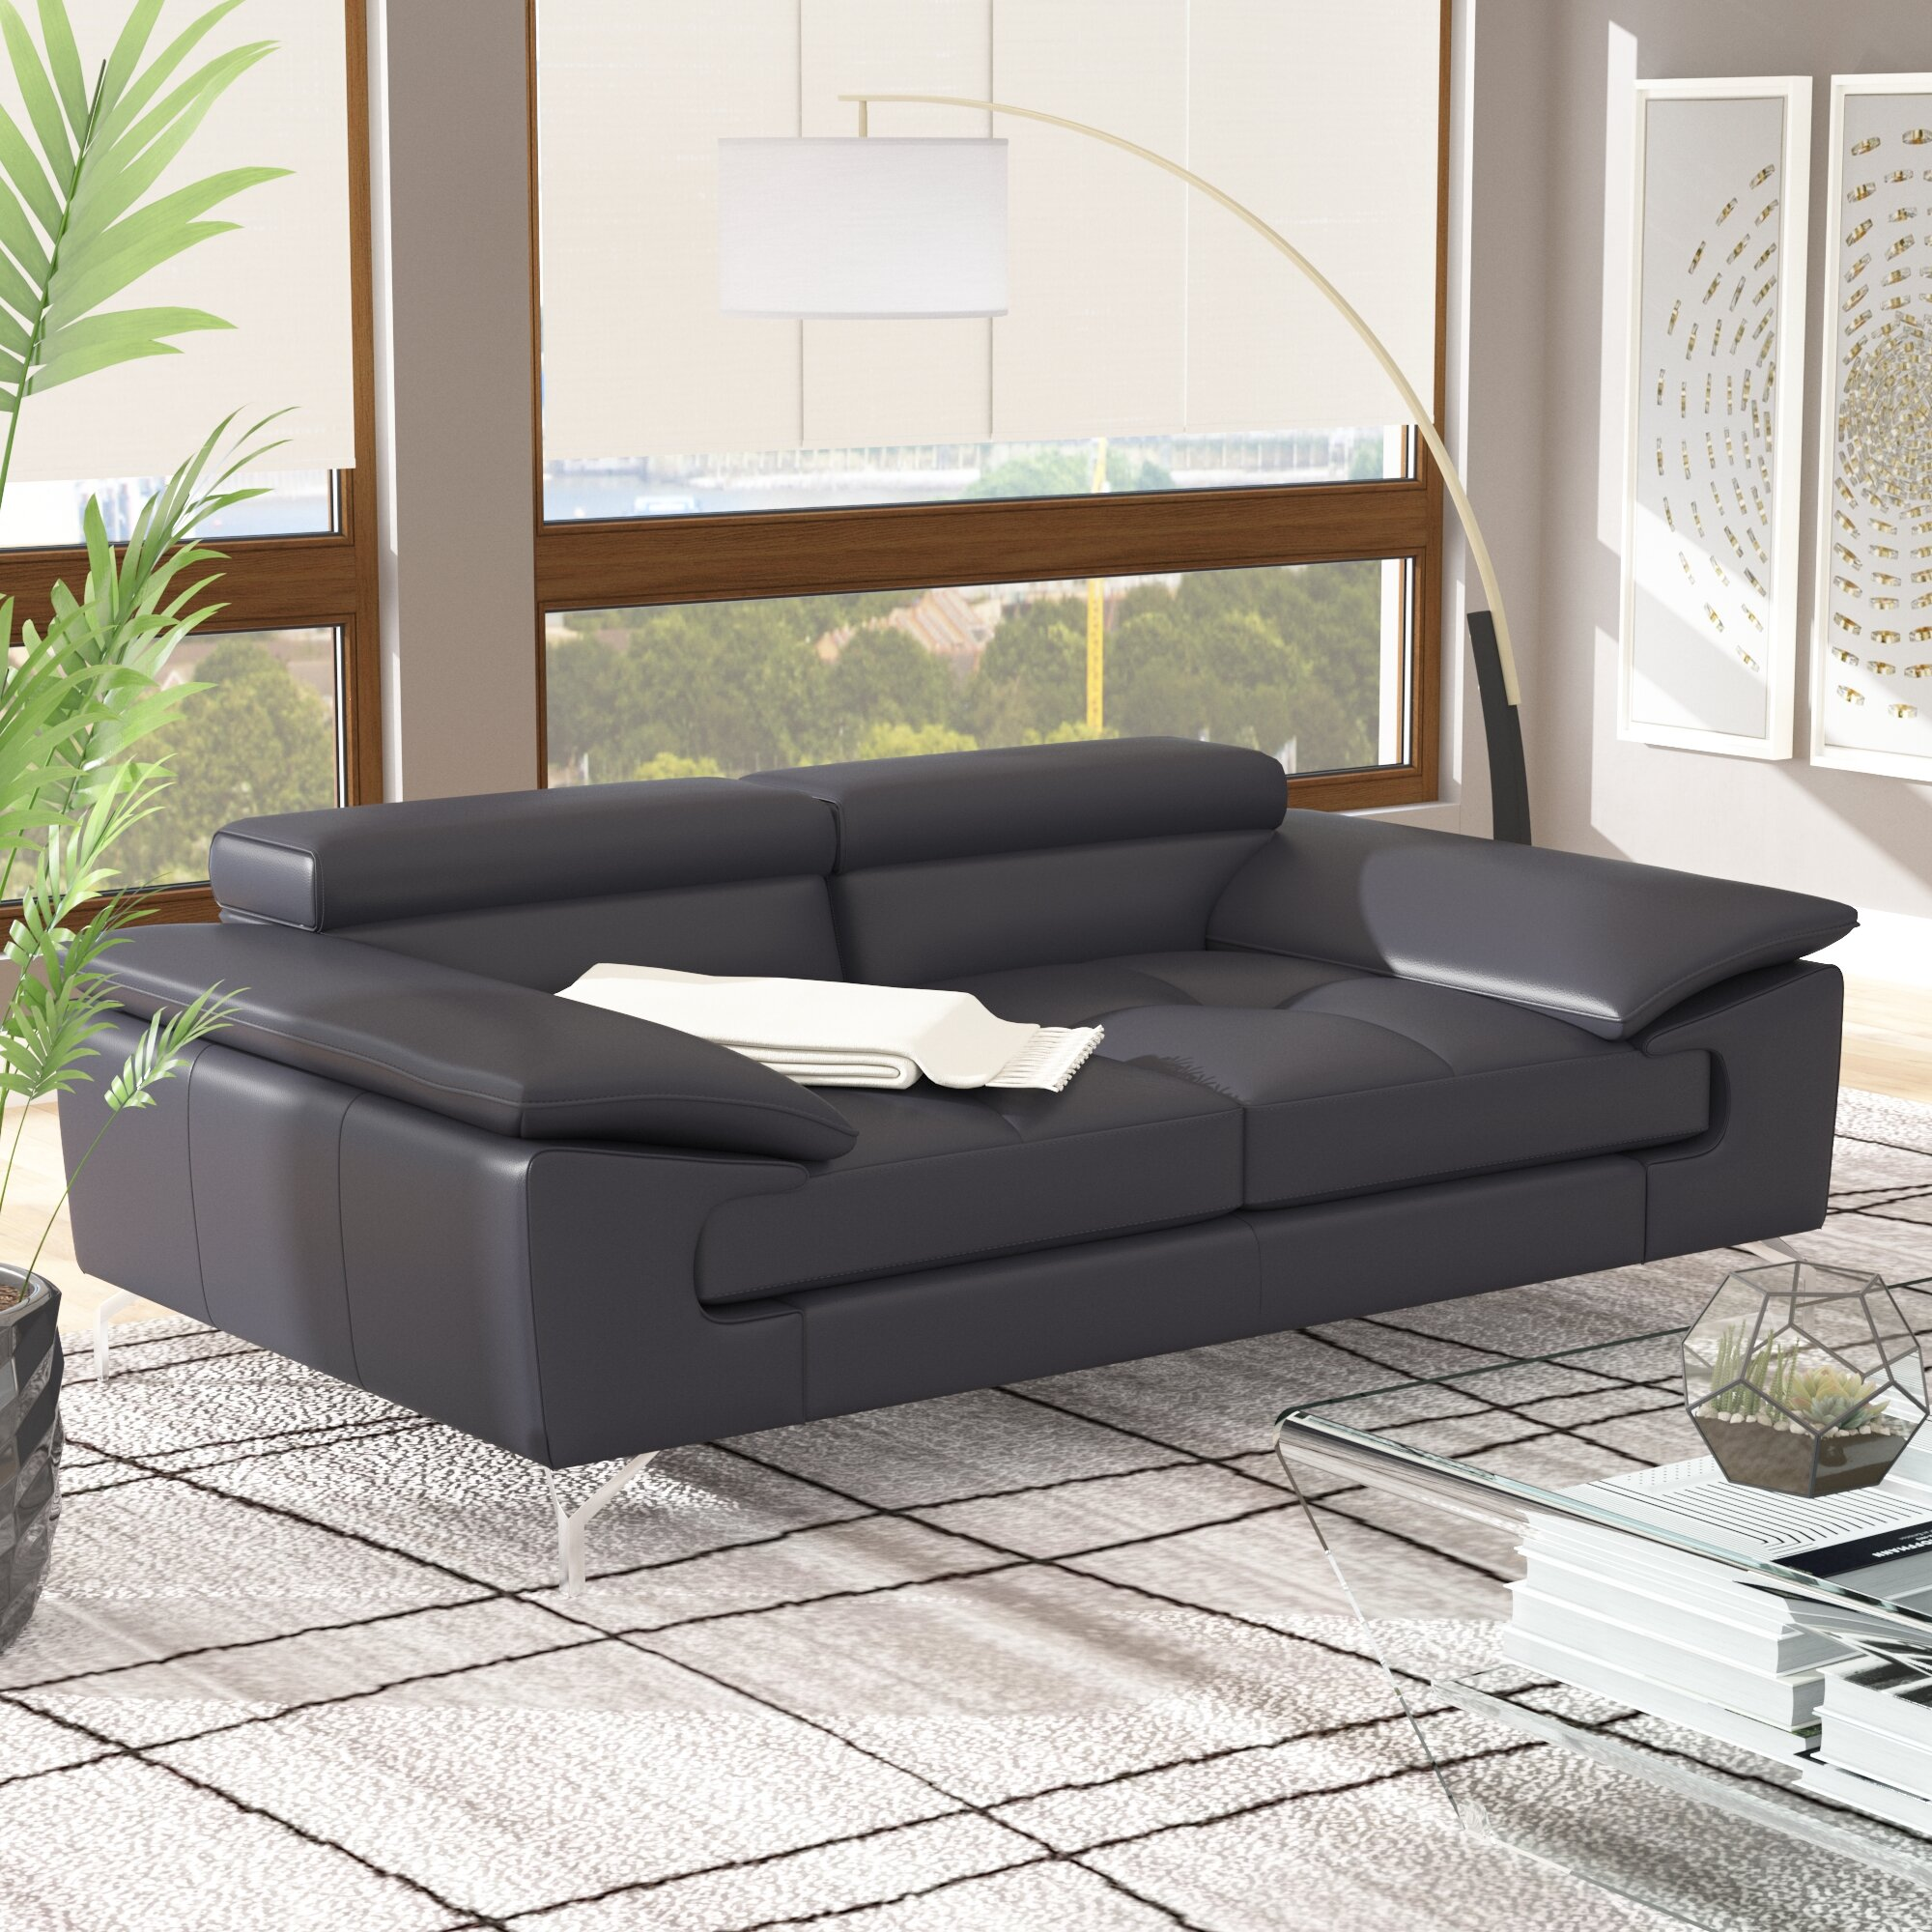 Super Modern Contemporary Italian Leather Sofa Sets Allmodern Home Interior And Landscaping Thycampuscom